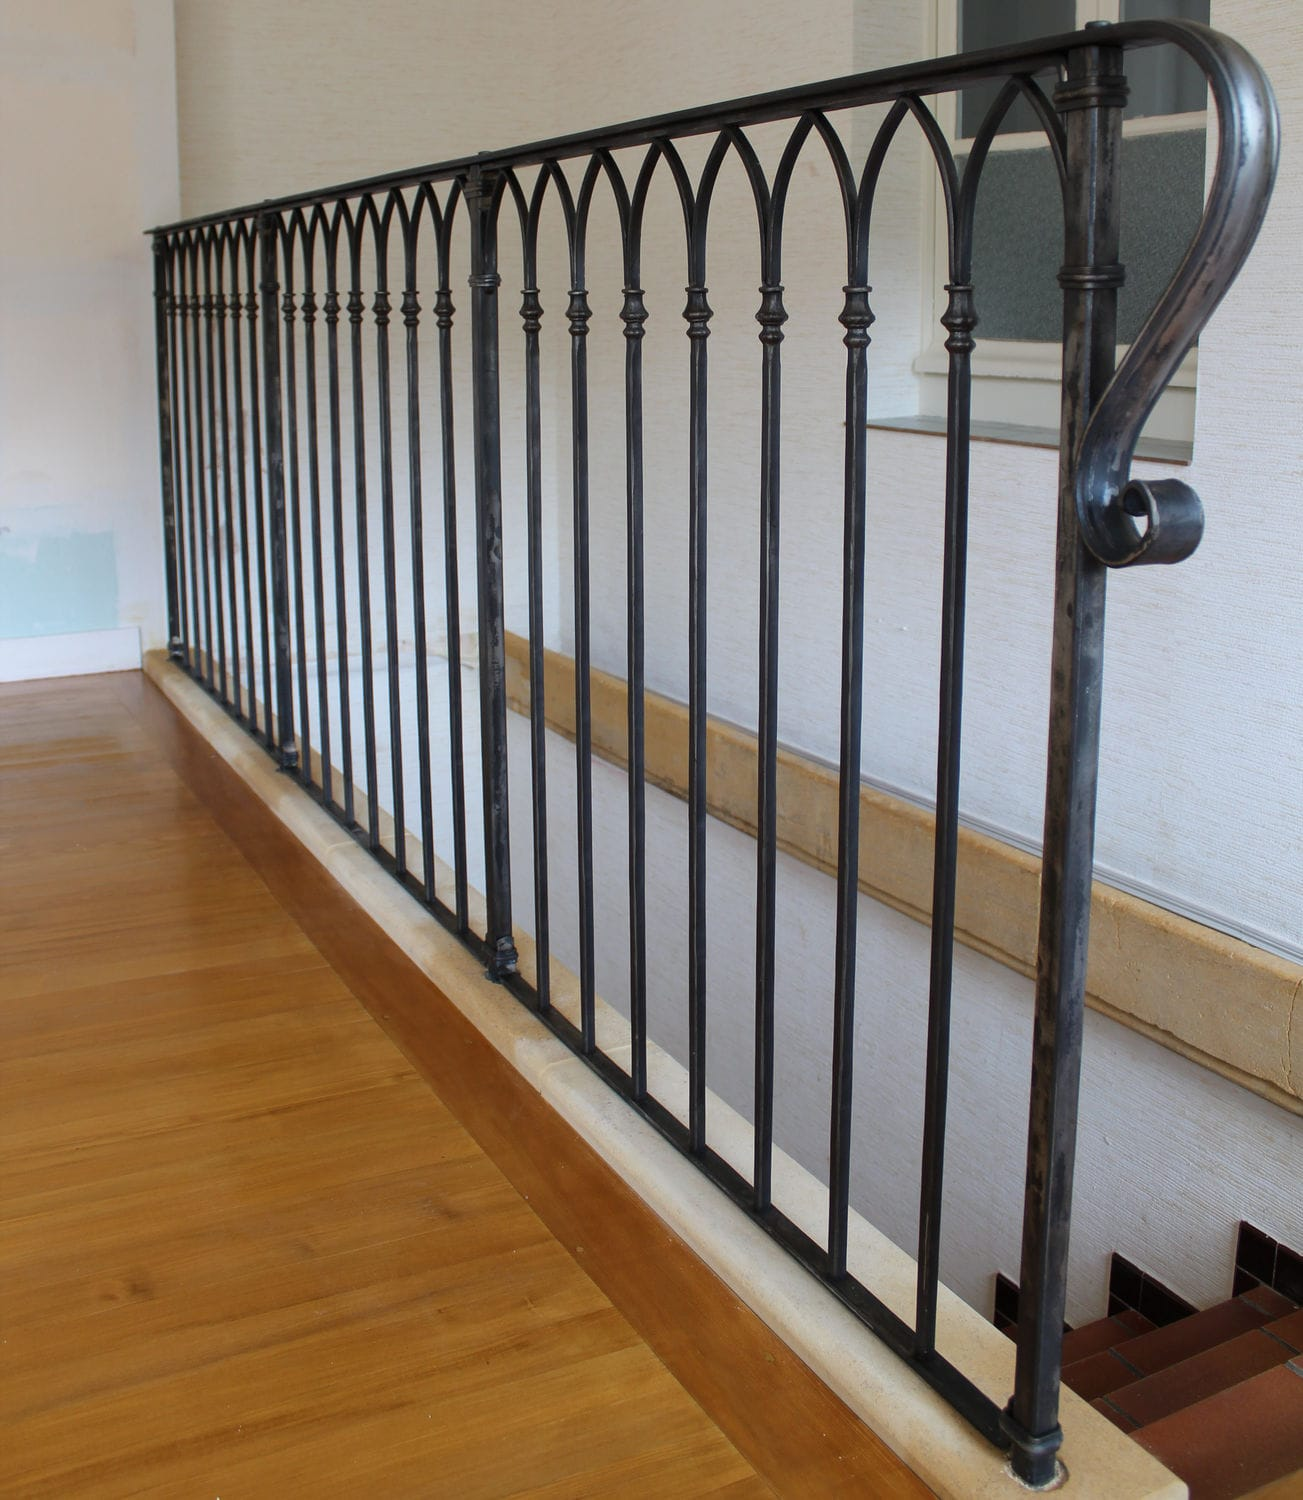 Wrought iron railing / with bars / indoor / for stairs - La Maestria